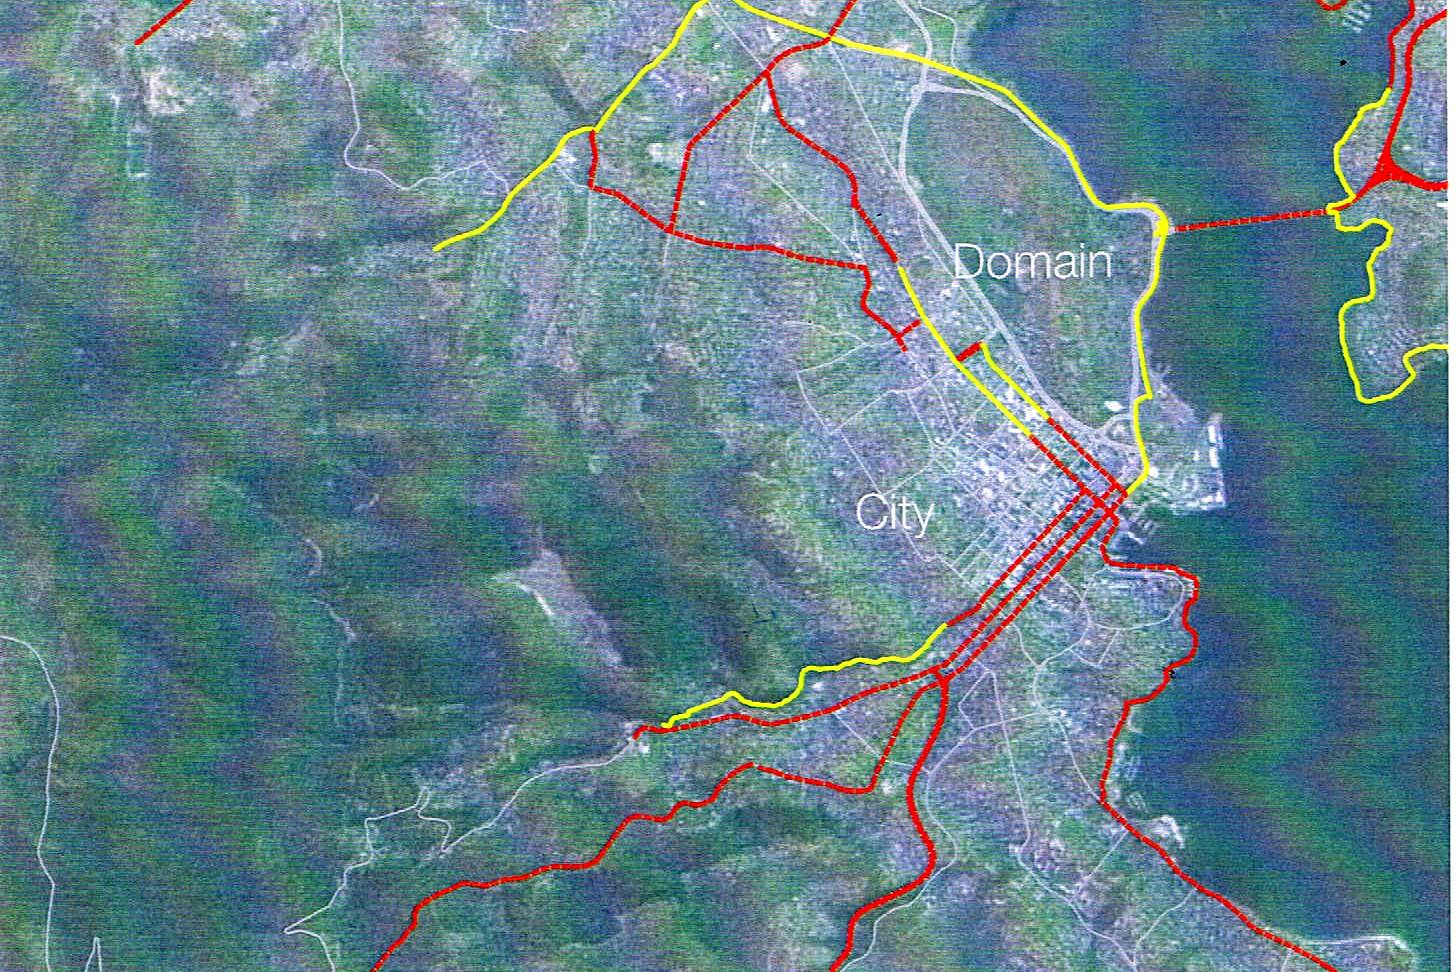 Hobart_Regional_Arterial_Bicycle_Network_Plan_2009_-_Hobart_thumb.JPG